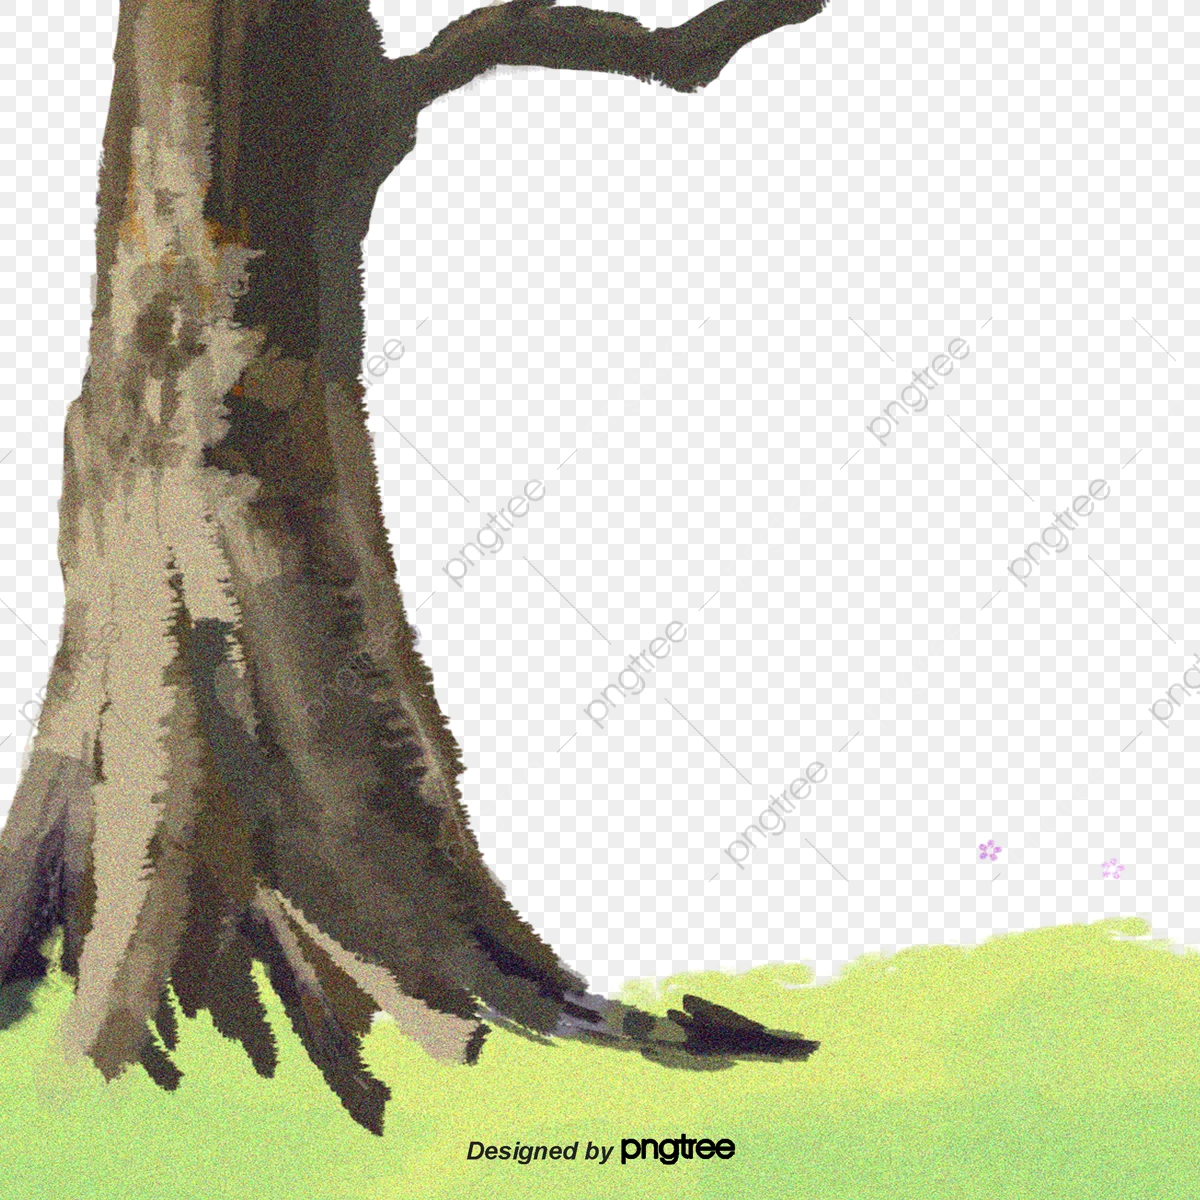 Cartoon Sturdy Tree Roots Cartoon Tree Tree Root Png Transparent Clipart Image And Psd File For Free Download Choose from 960+ tree roots graphic resources and download in the form of png, eps, ai or psd. https pngtree com freepng cartoon sturdy tree roots 4282032 html